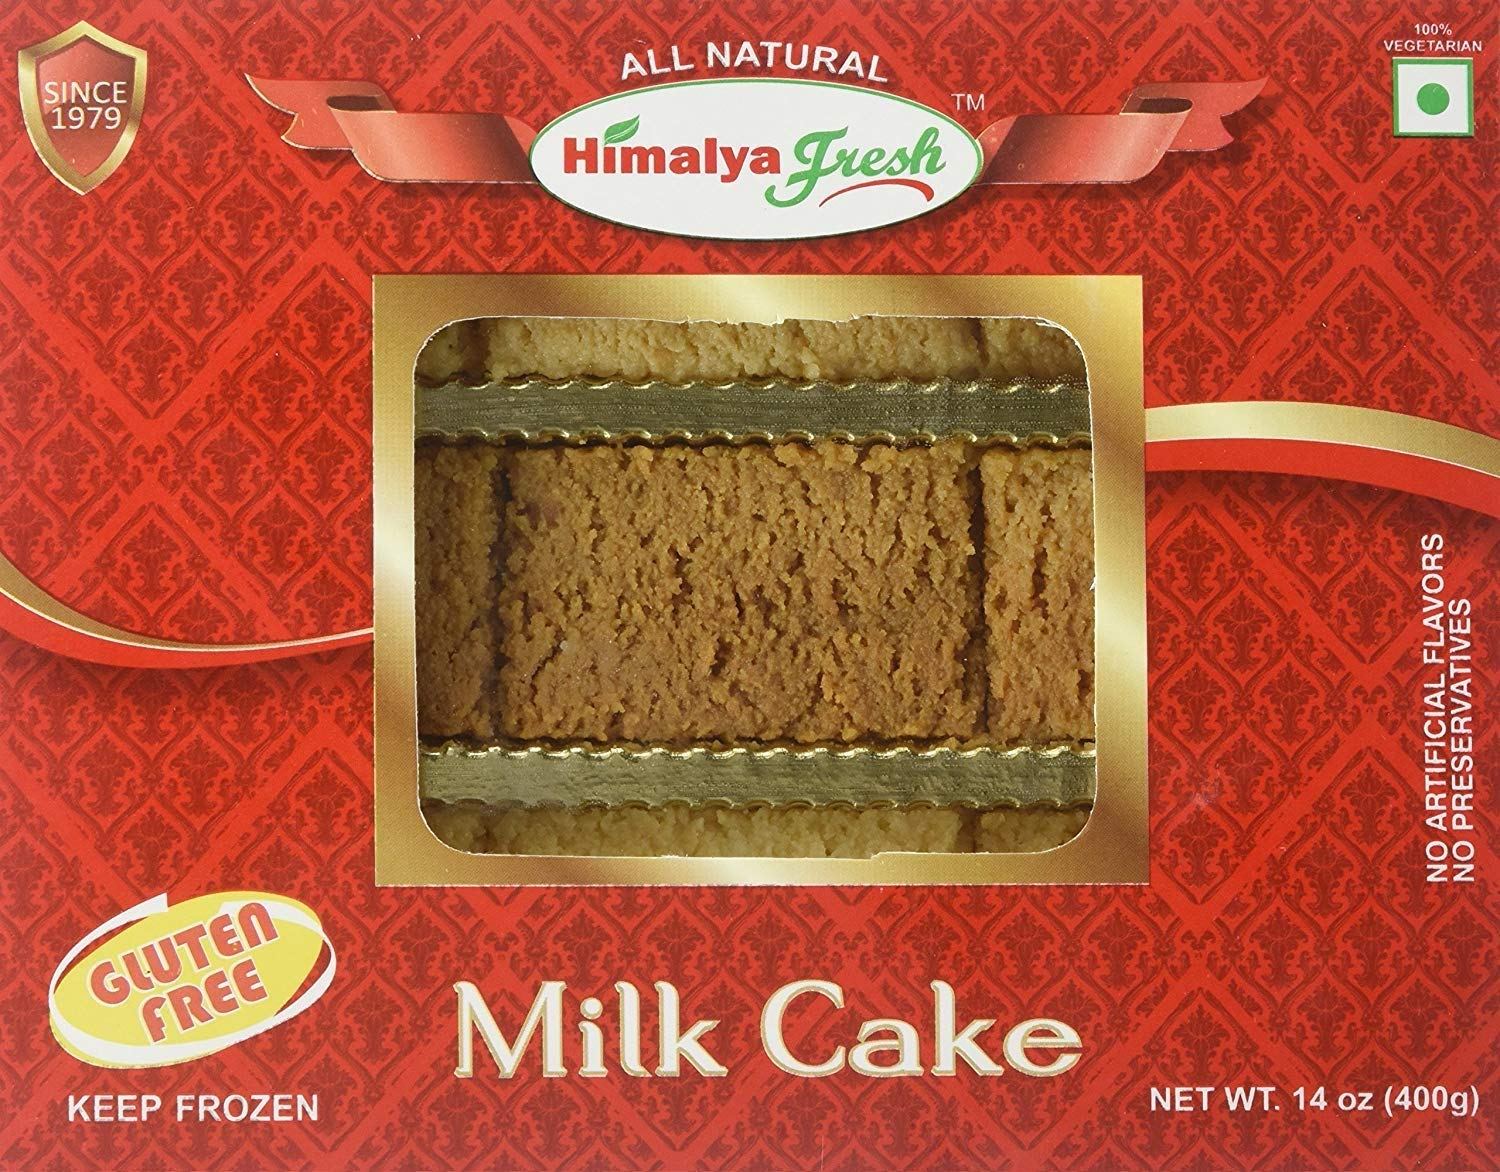 HIMALYA FRESH Milk Cake 14 oz - Premium Authentic, Luxurious Sweet Made With Pure Grass fed water Buffalo Milk and sugar (just two ingredients) - No Fillers Or Preservatives (2 Boxes) by Himalya Fresh